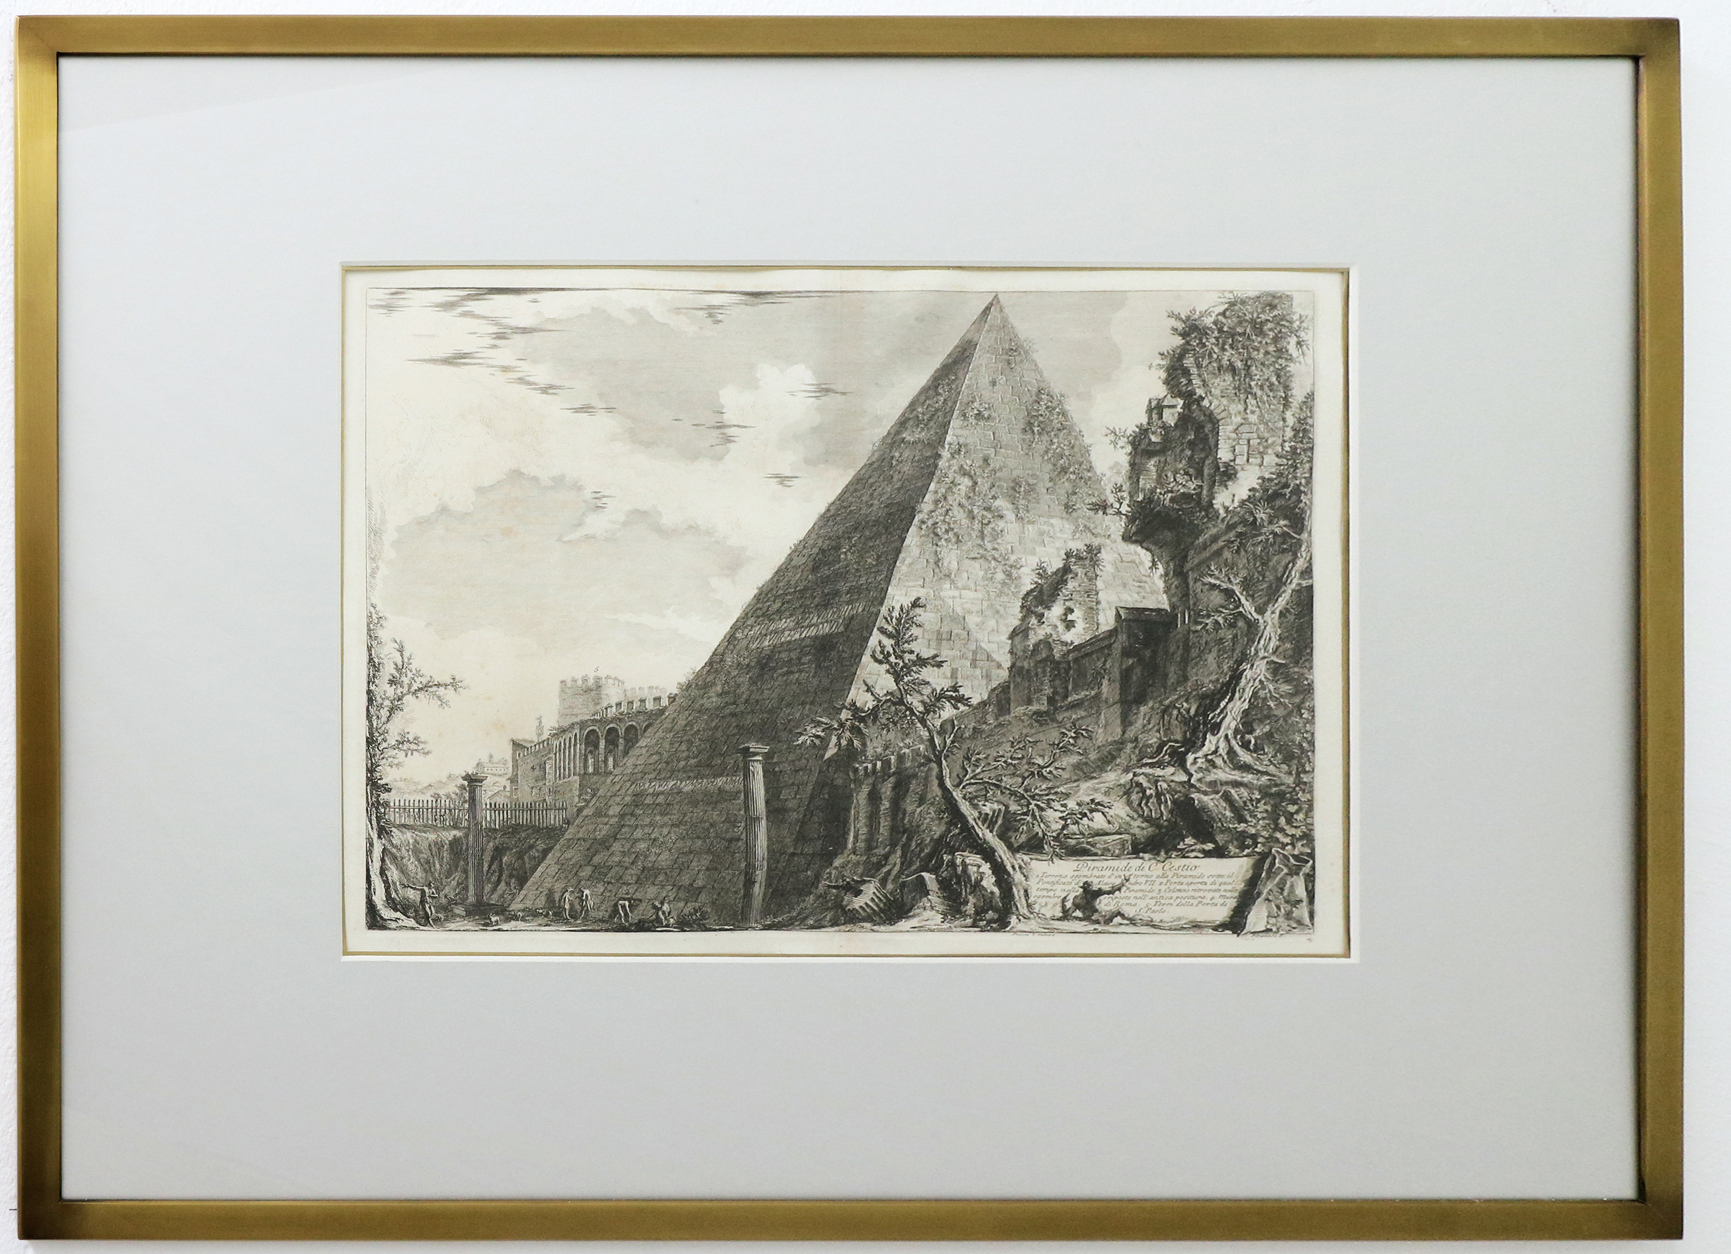 menthaphysica_easyupstream_giovanni_battista_piranesi_vedute_roma